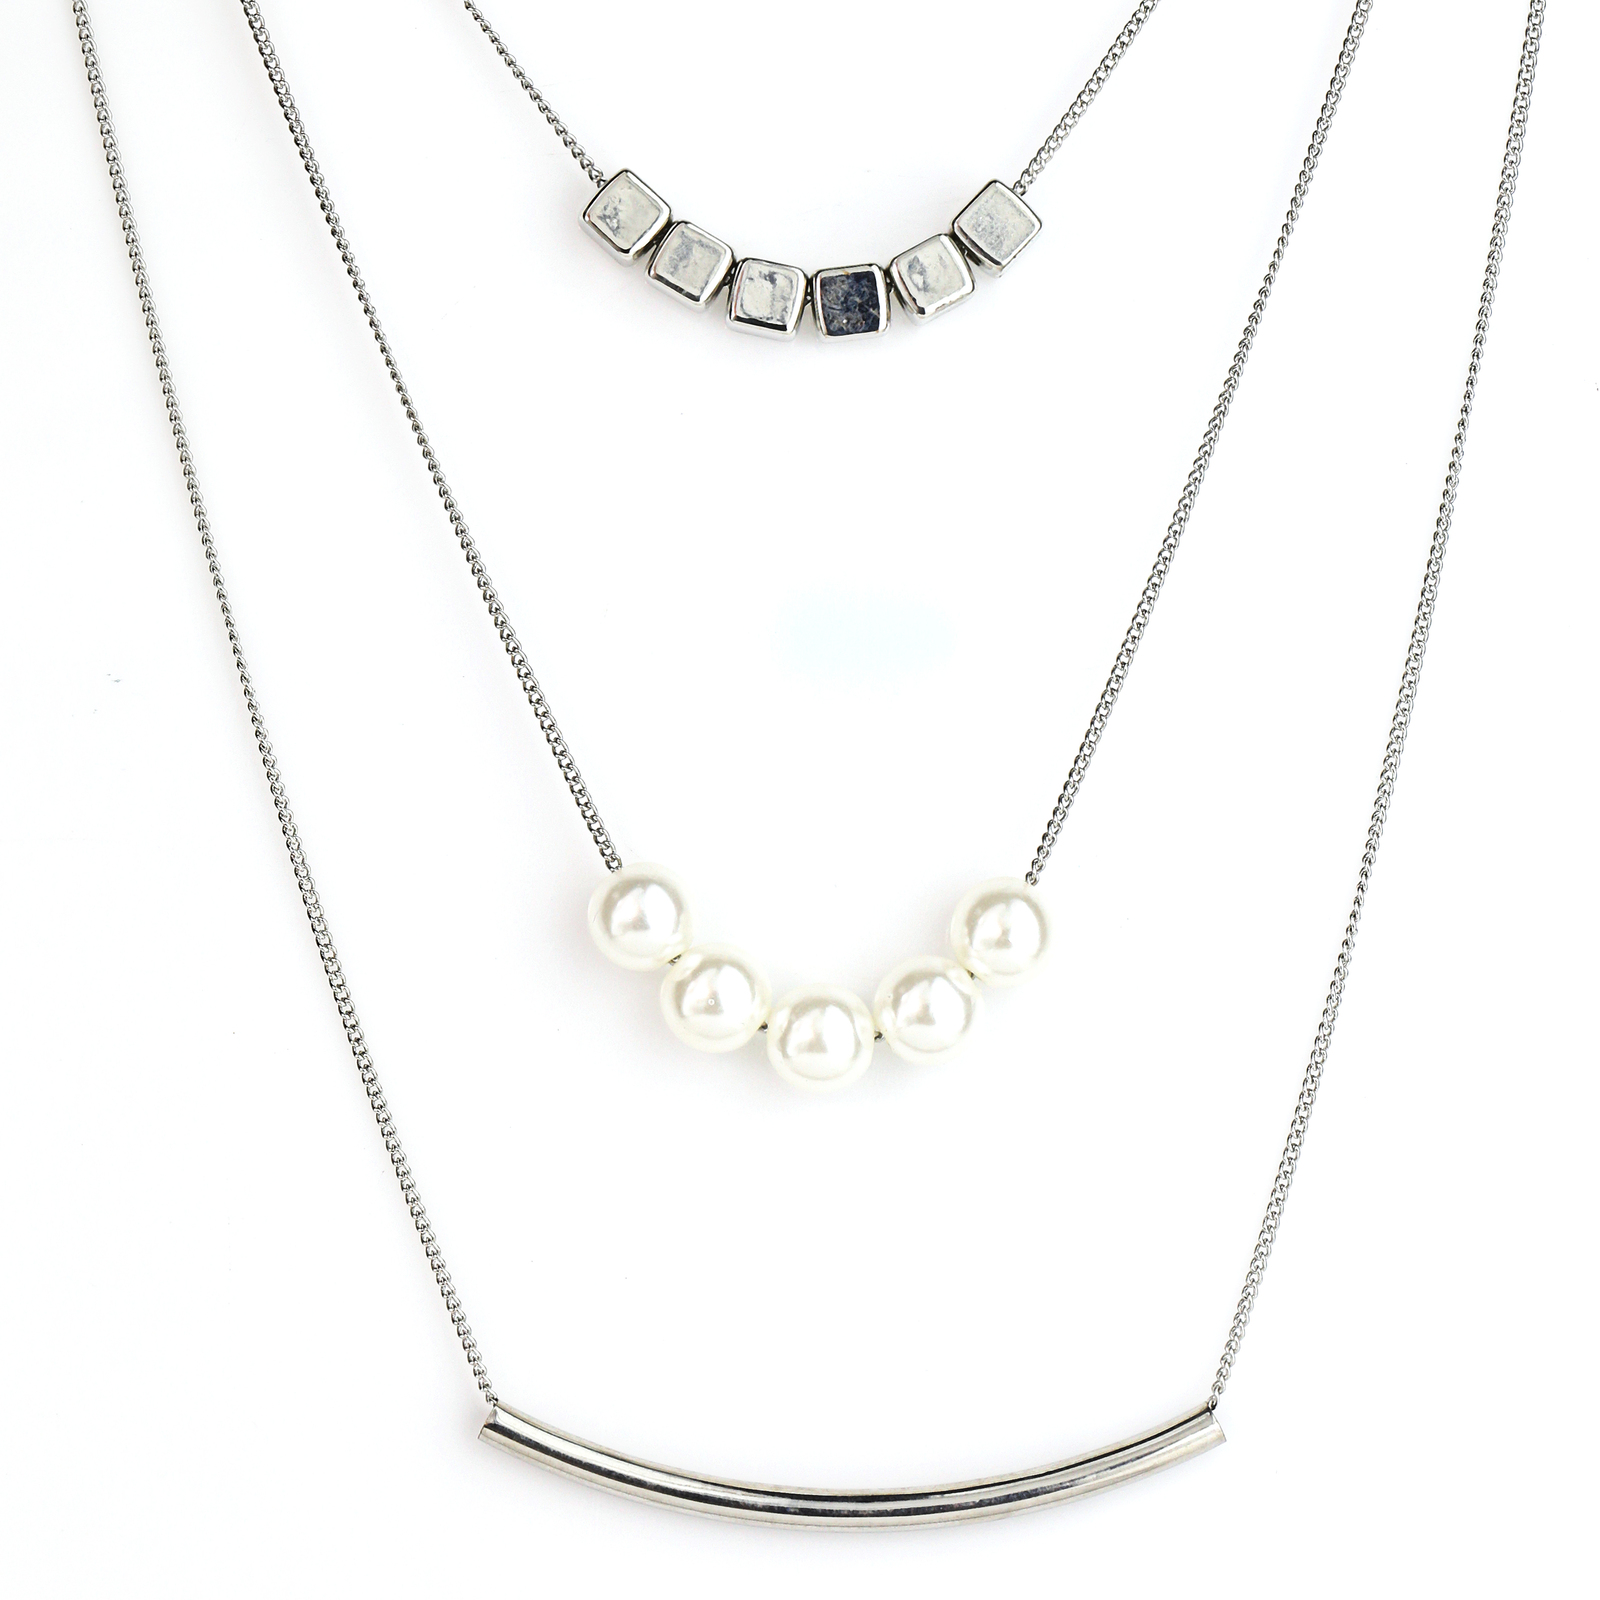 UE- Unique Multi-Strand Silver Tone Necklace with Bar & Faux Pearl Design